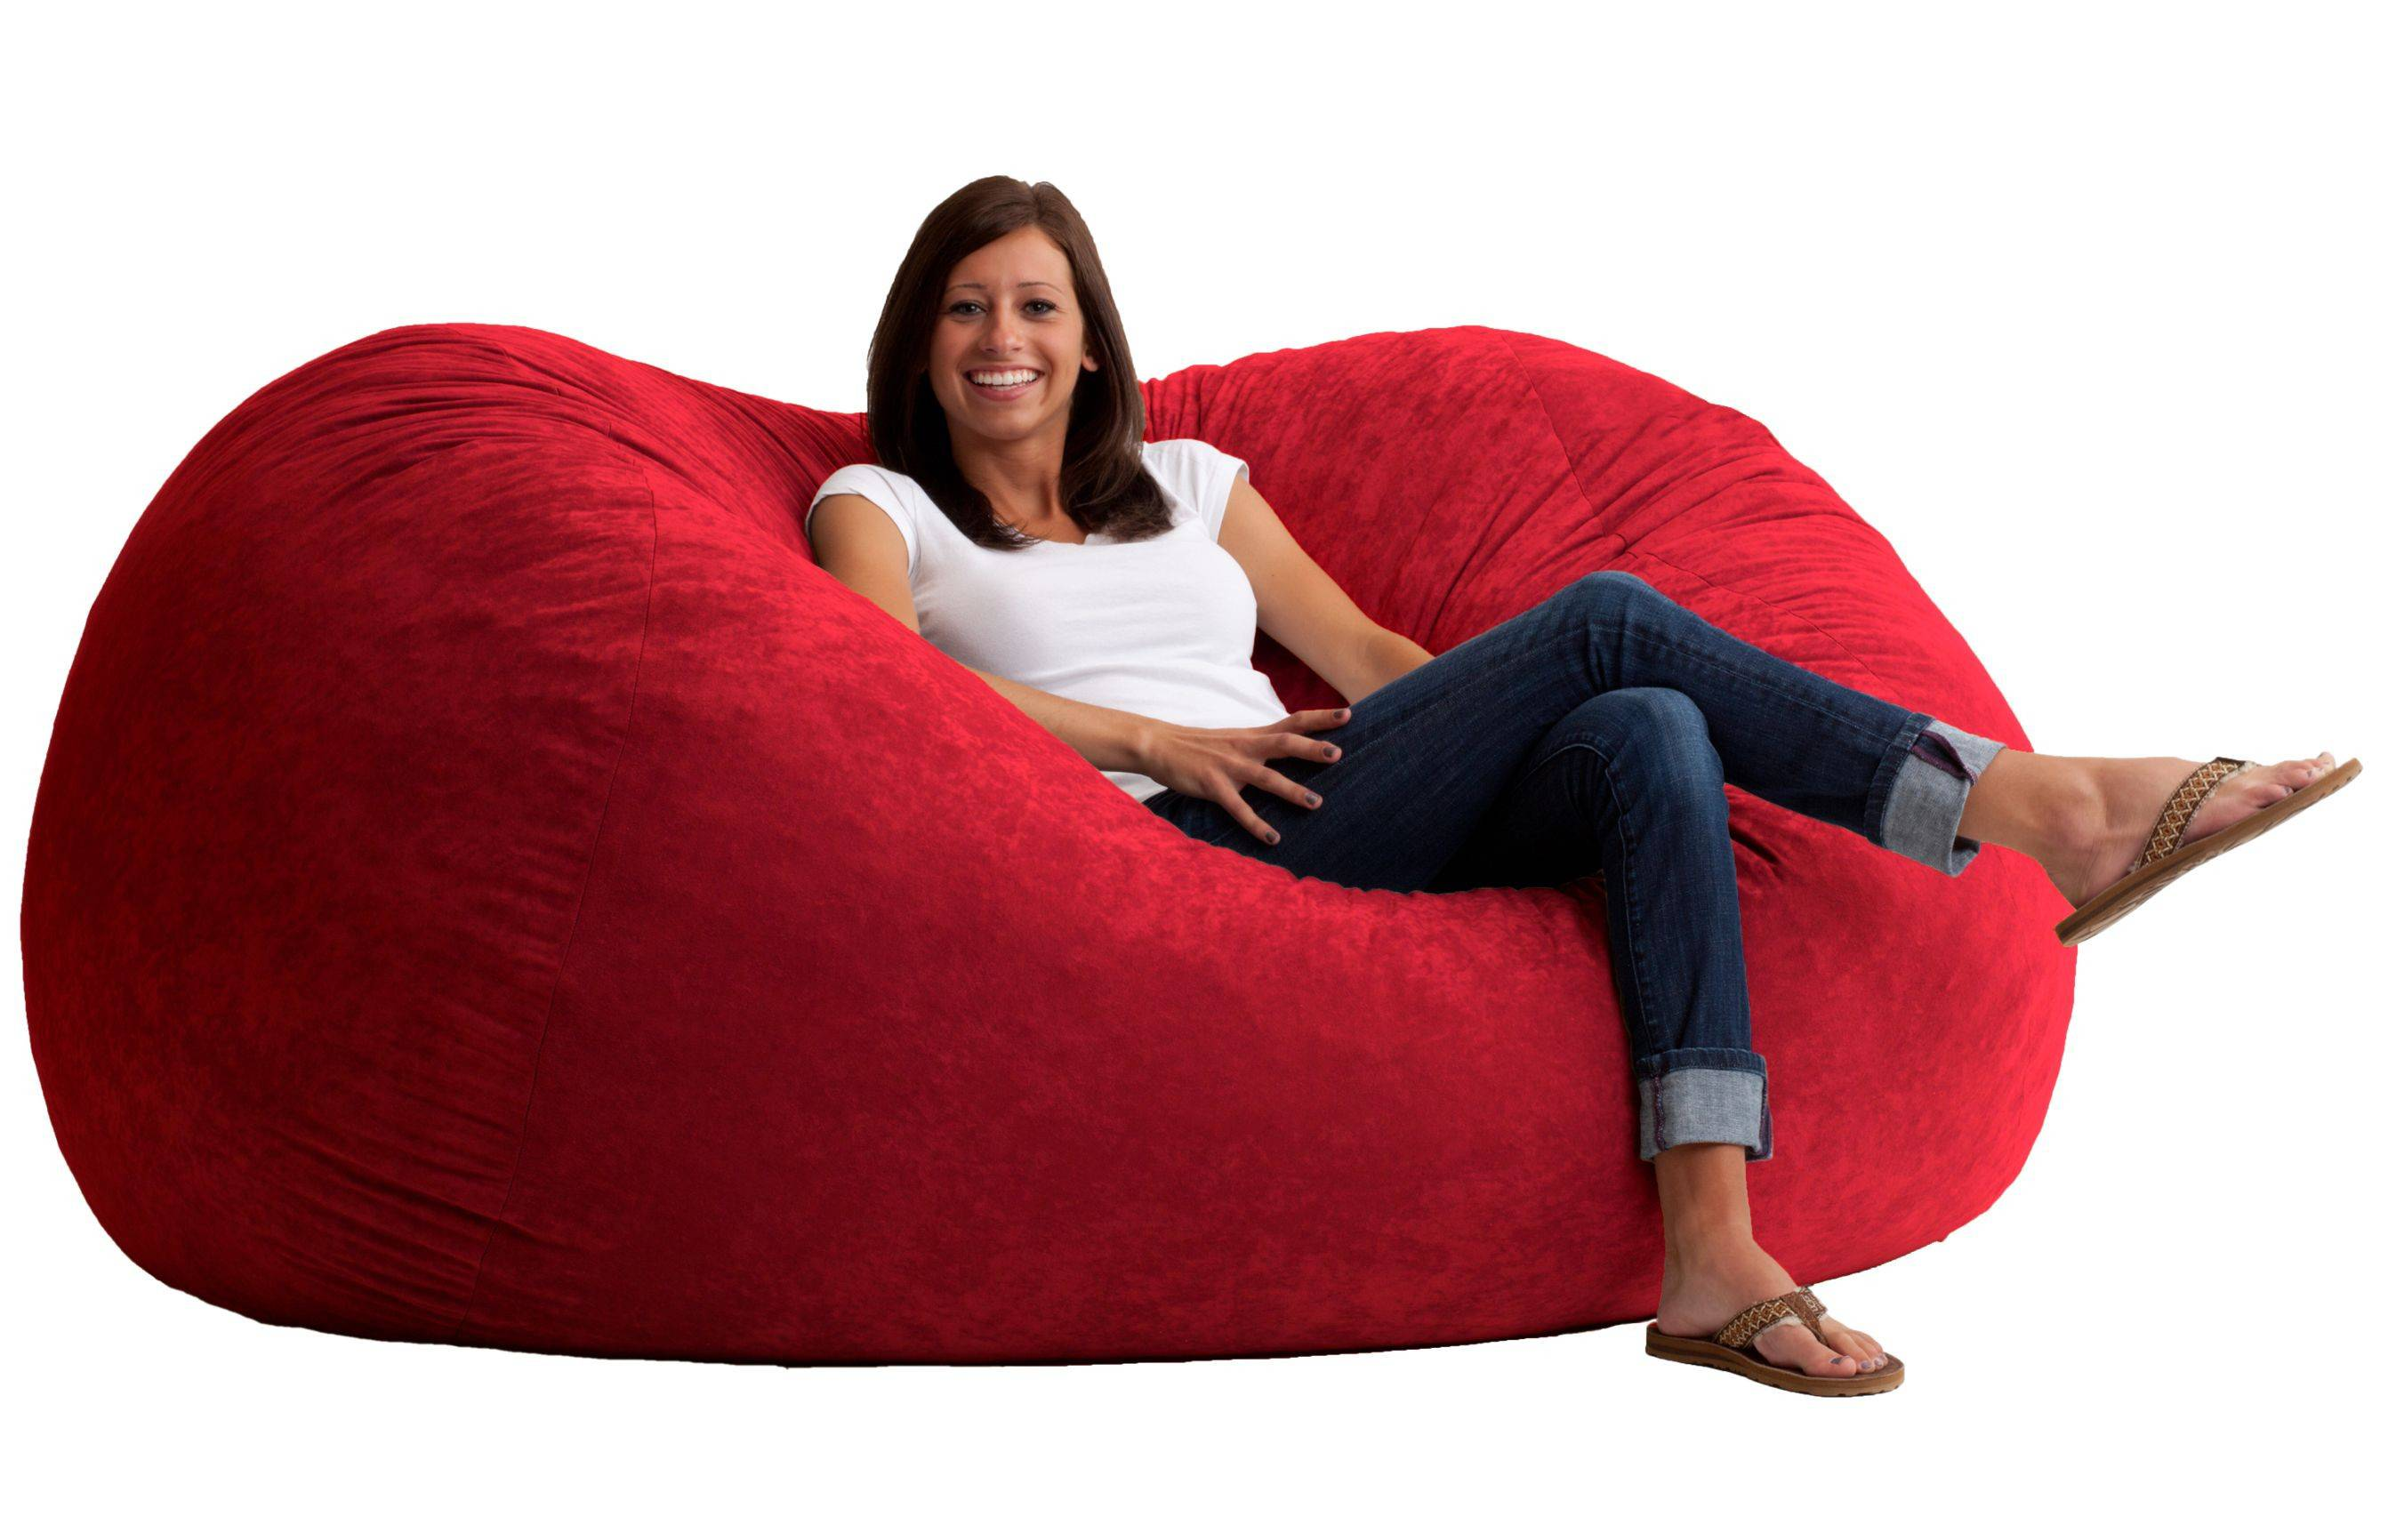 best bean bag chair Top 10 Best Bean Bag Chairs of 2018 Review » Best Bungee Chairs  best bean bag chair